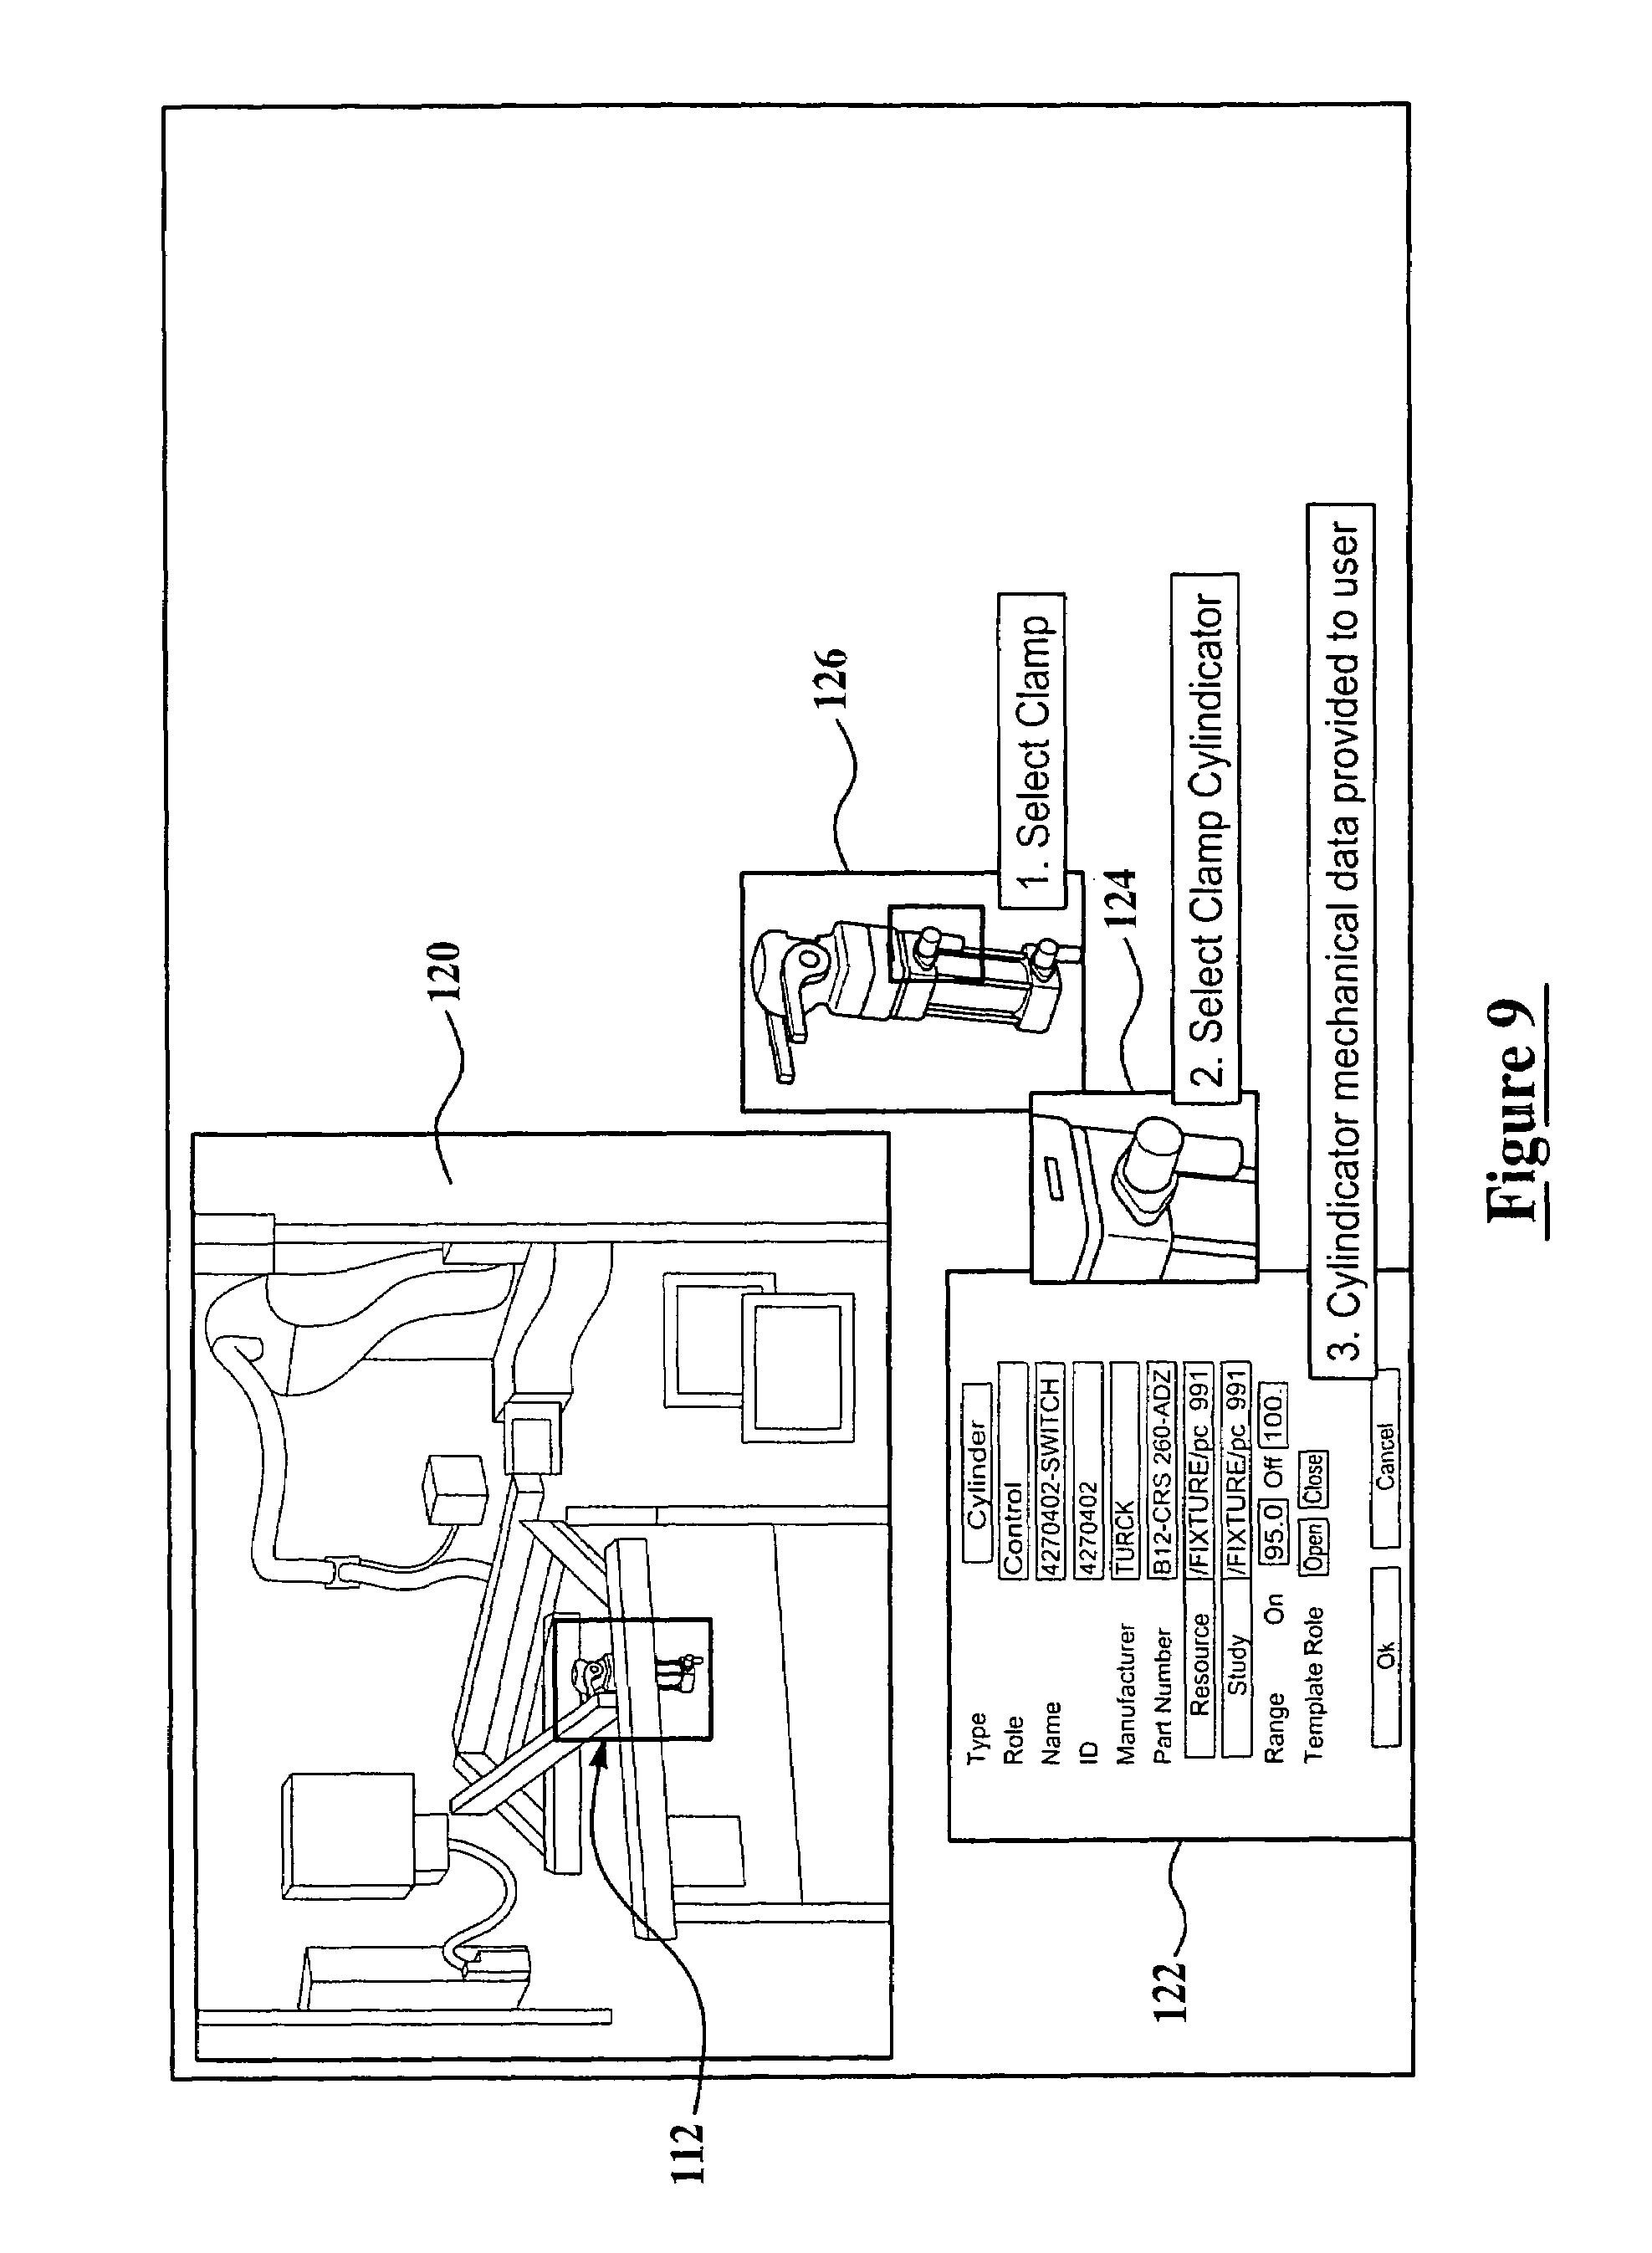 Patent Us7433801 Identifying And Visualizing Faults In Plc Based Turck I O Block Wiring Diagram Drawing